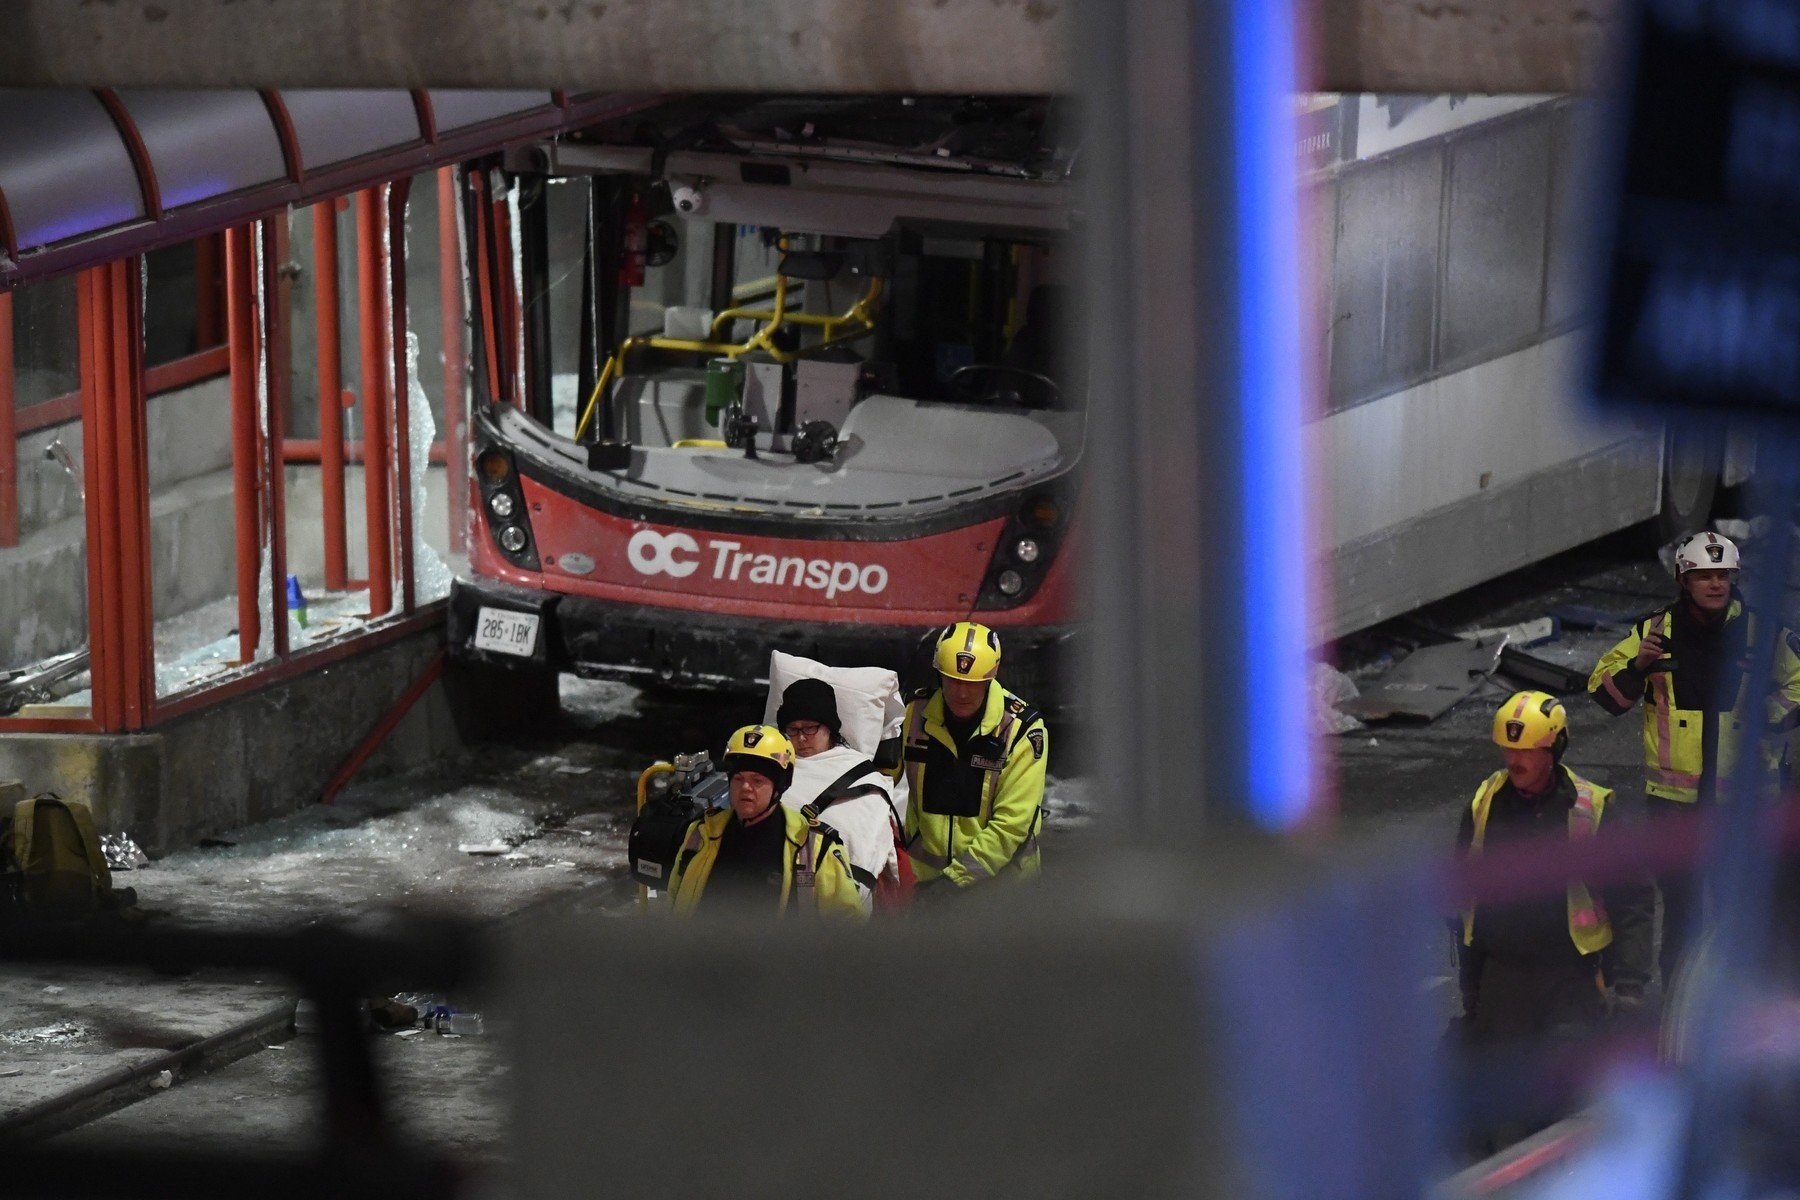 January 11, 2019 - Ottawa, on, Canada - Police and a first responders work at the scene where a double-decker city bus struck a transit shelter in Ottawa, on Friday, Jan. 11, 2019., Image: 406722649, License: Rights-managed, Restrictions: * Canada and U.S. RIGHTS OUT *, Model Release: no, Credit line: Profimedia, Zuma Press - News